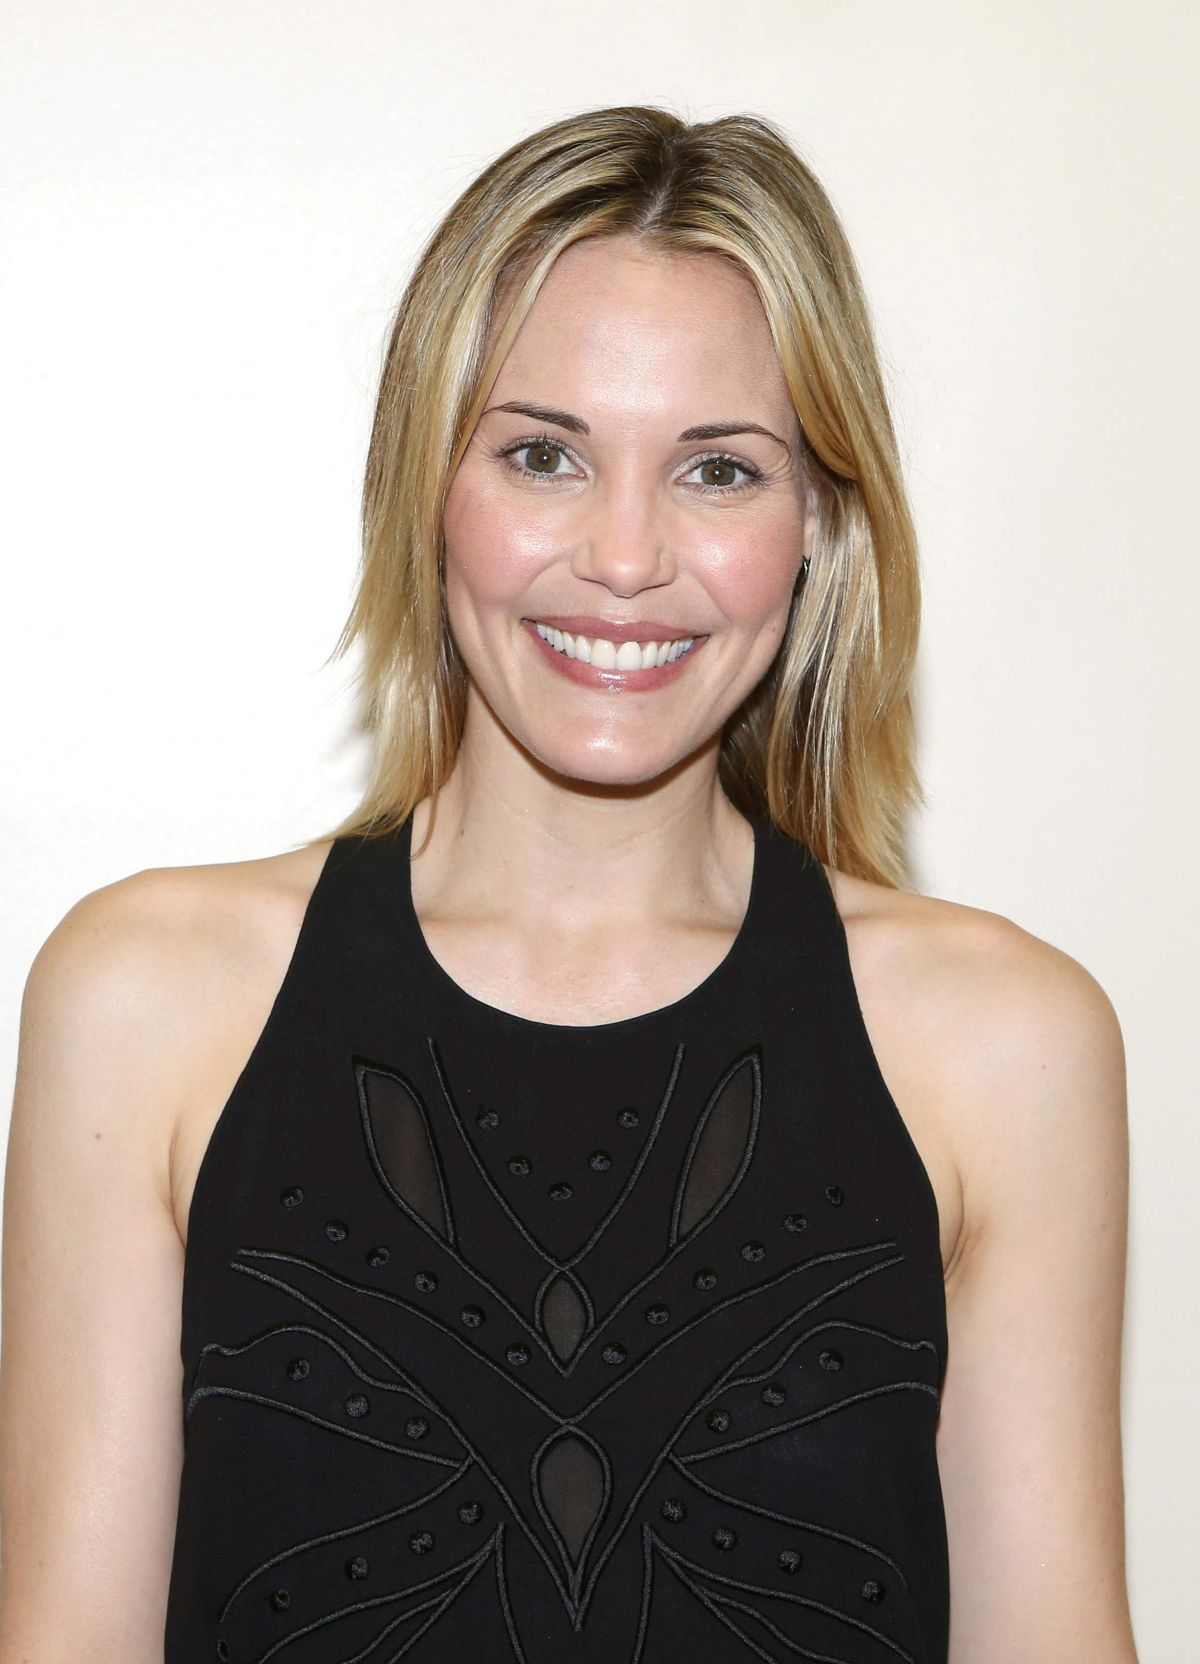 leslie bibb filmographyleslie bibb photo, leslie bibb iron man, leslie bibb on craig ferguson, leslie bibb wikipedia, leslie bibb instagram, leslie bibb and sam rockwell, leslie bibb filmography, leslie bibb movie 43, leslie bibb, leslie bibb net worth, leslie bibb wiki, leslie bibb popular